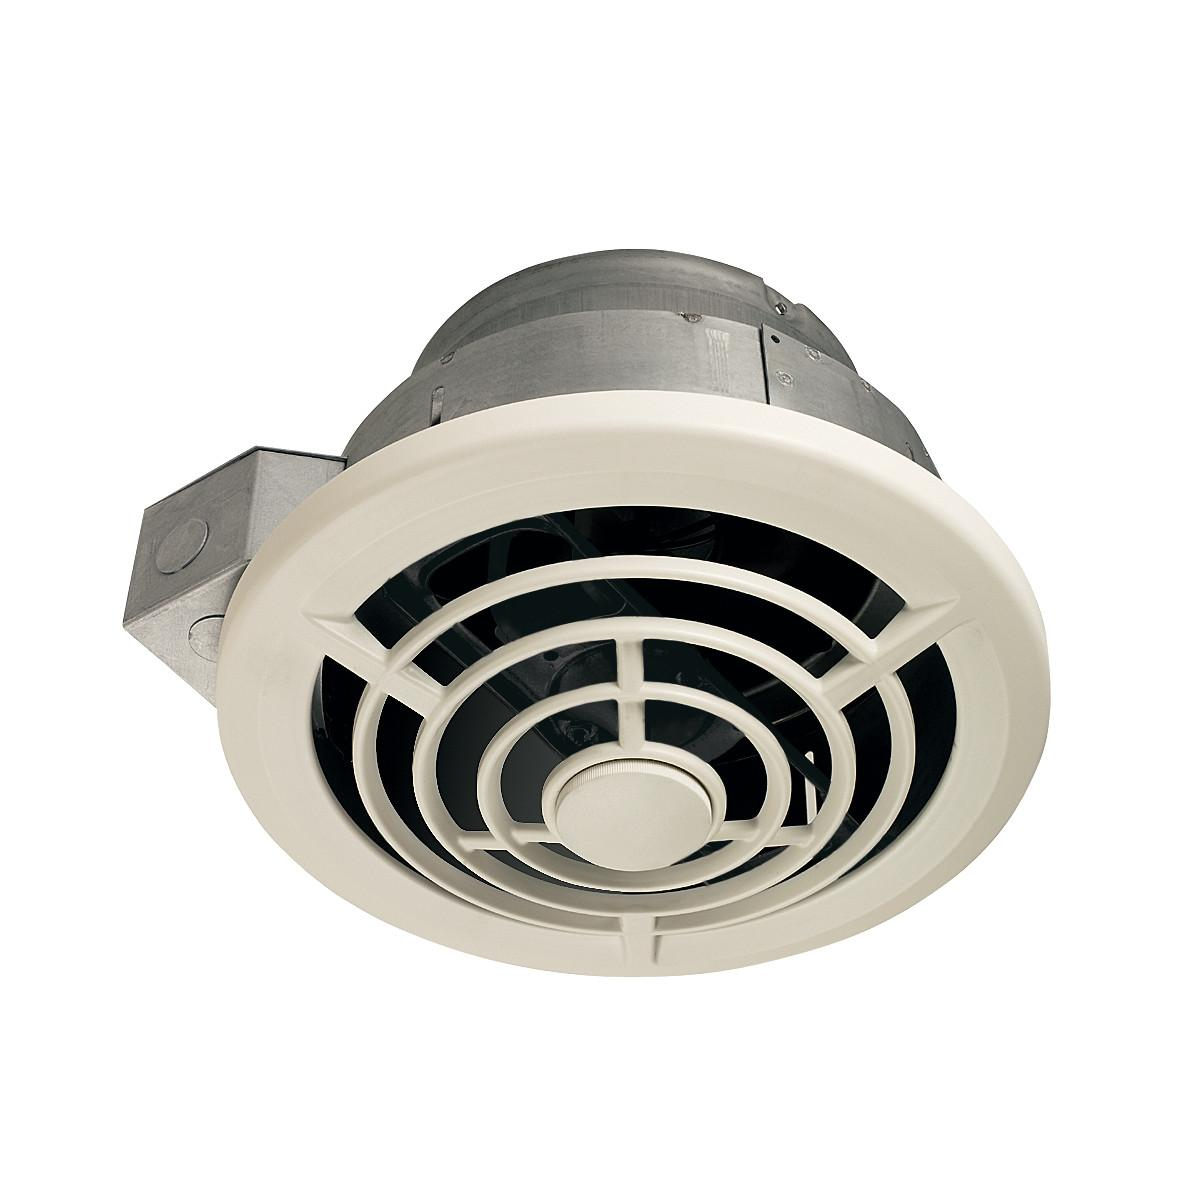 Nutone 8210 8 Inch Vertical Discharge And 7 Inch Round Duct Ceiling Fan